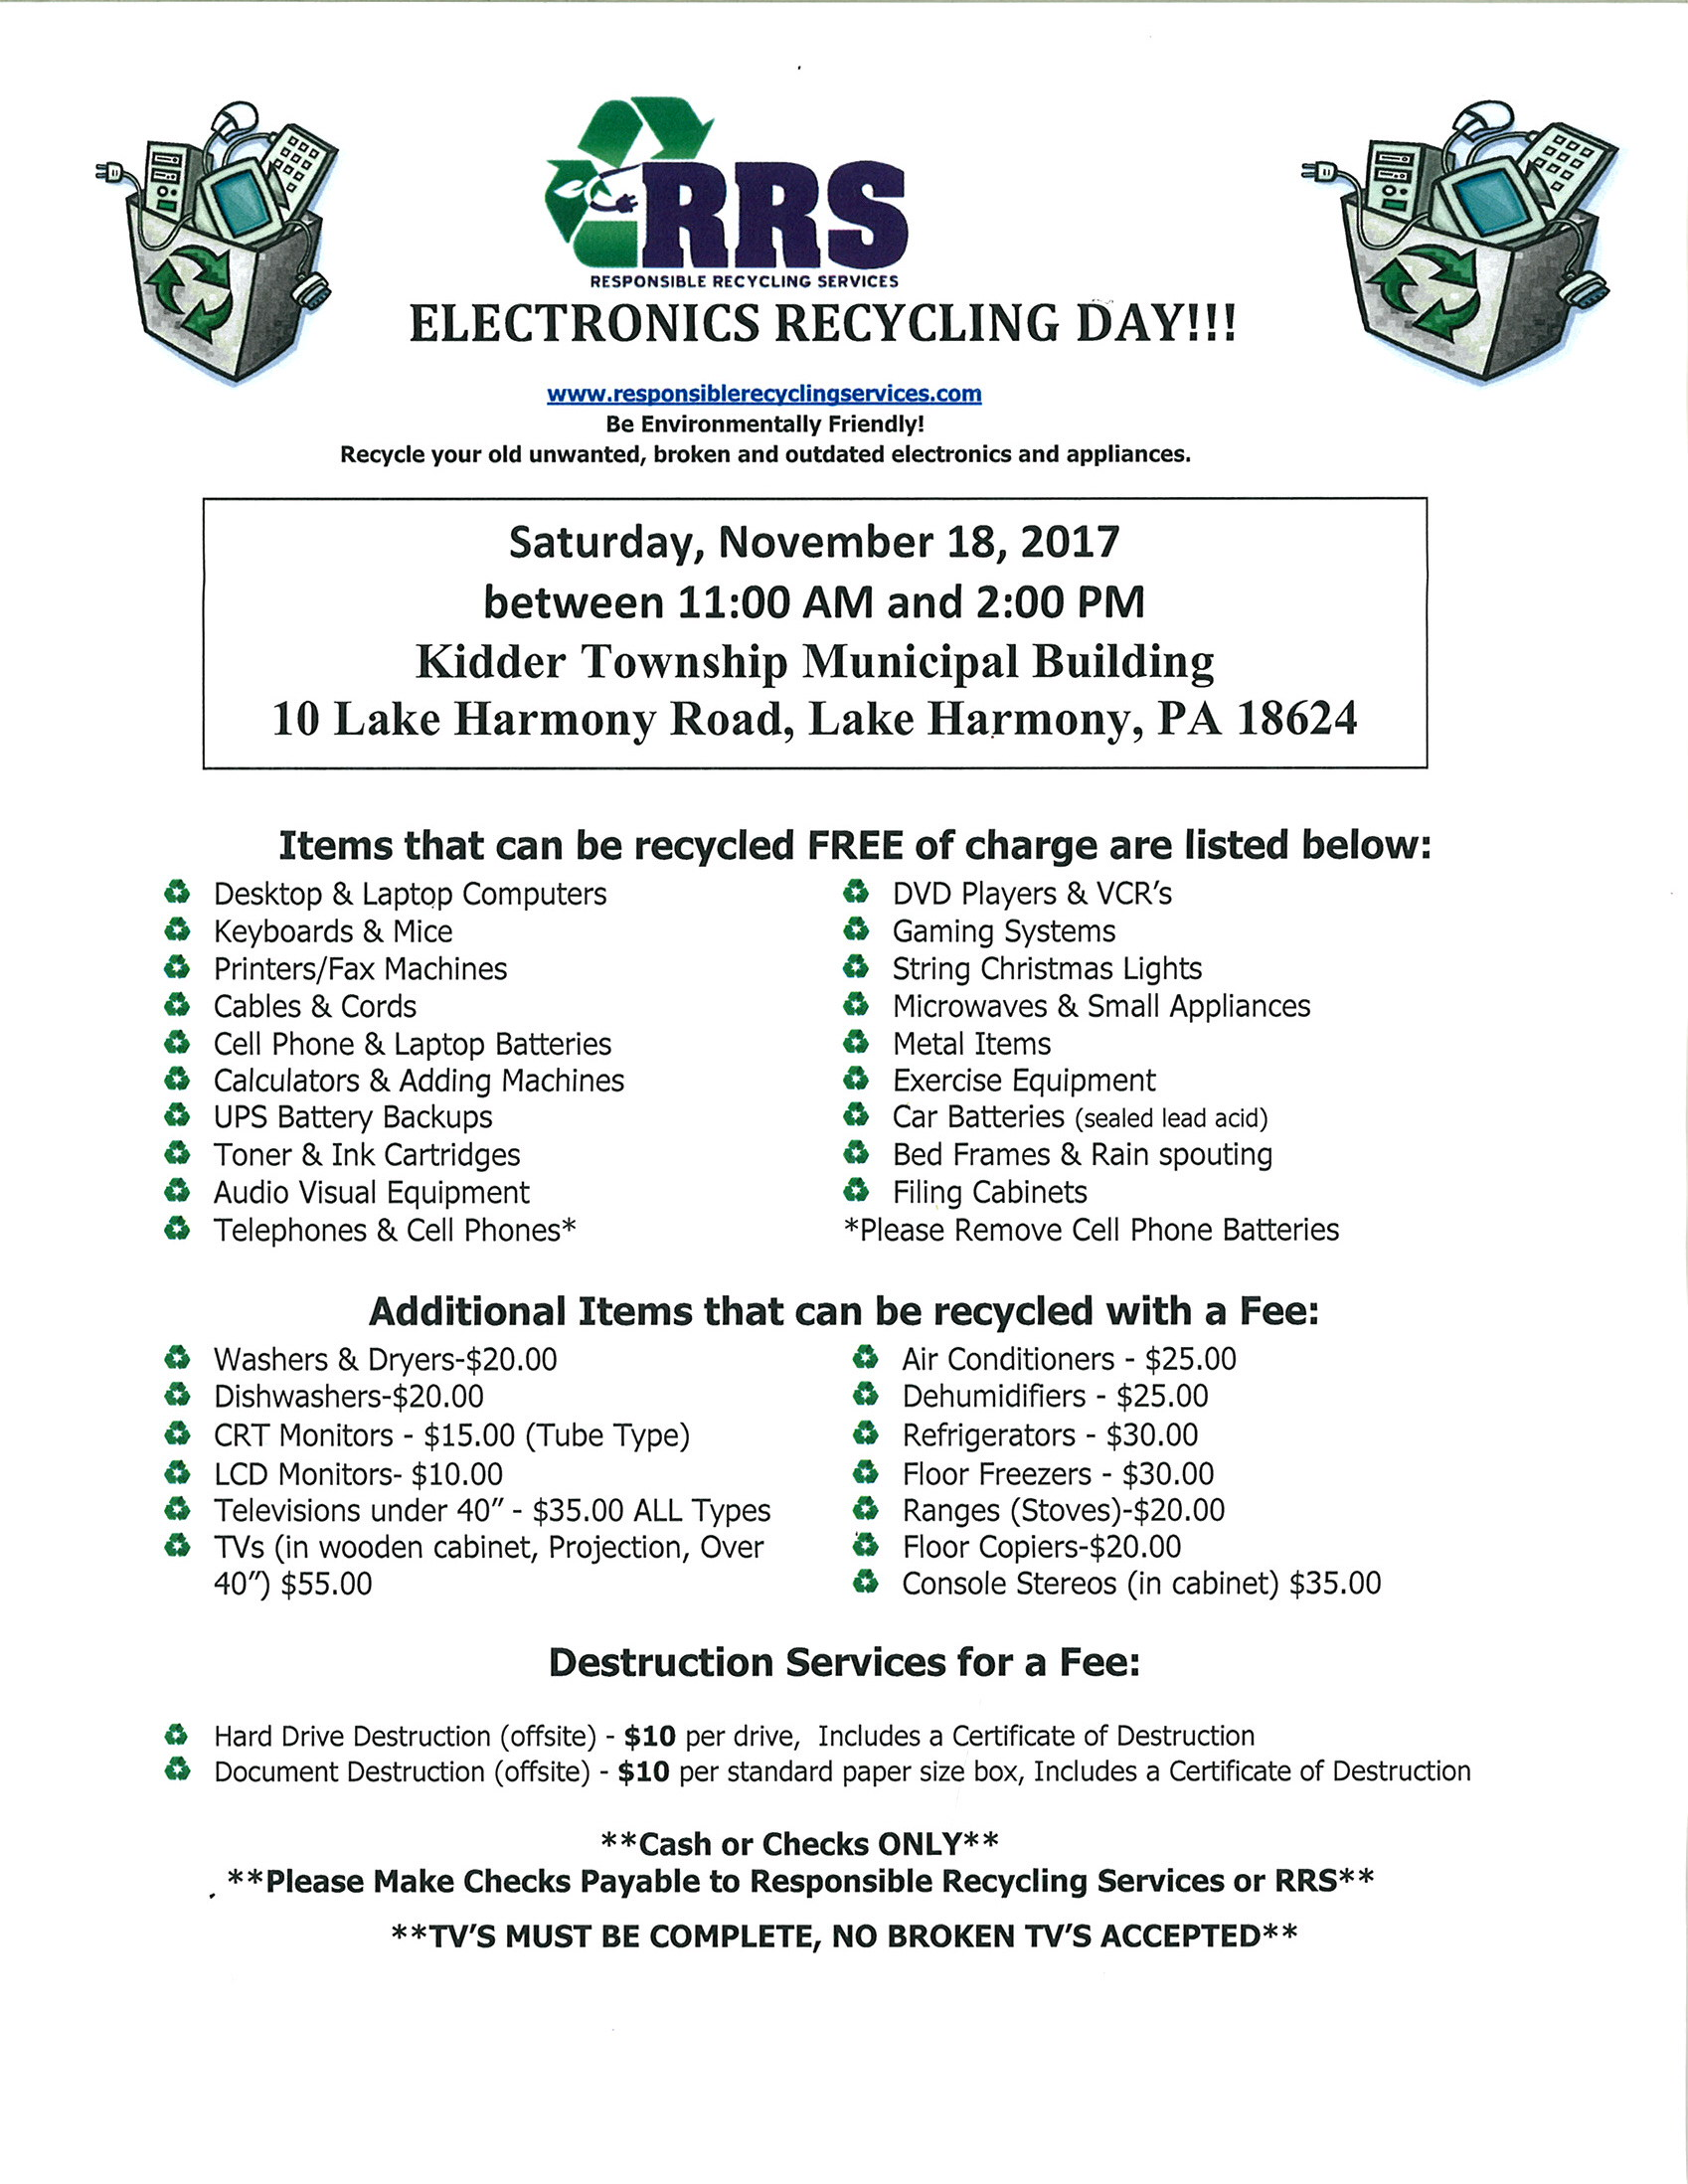 Electronics collection programs event flier 1betcityfo Image collections